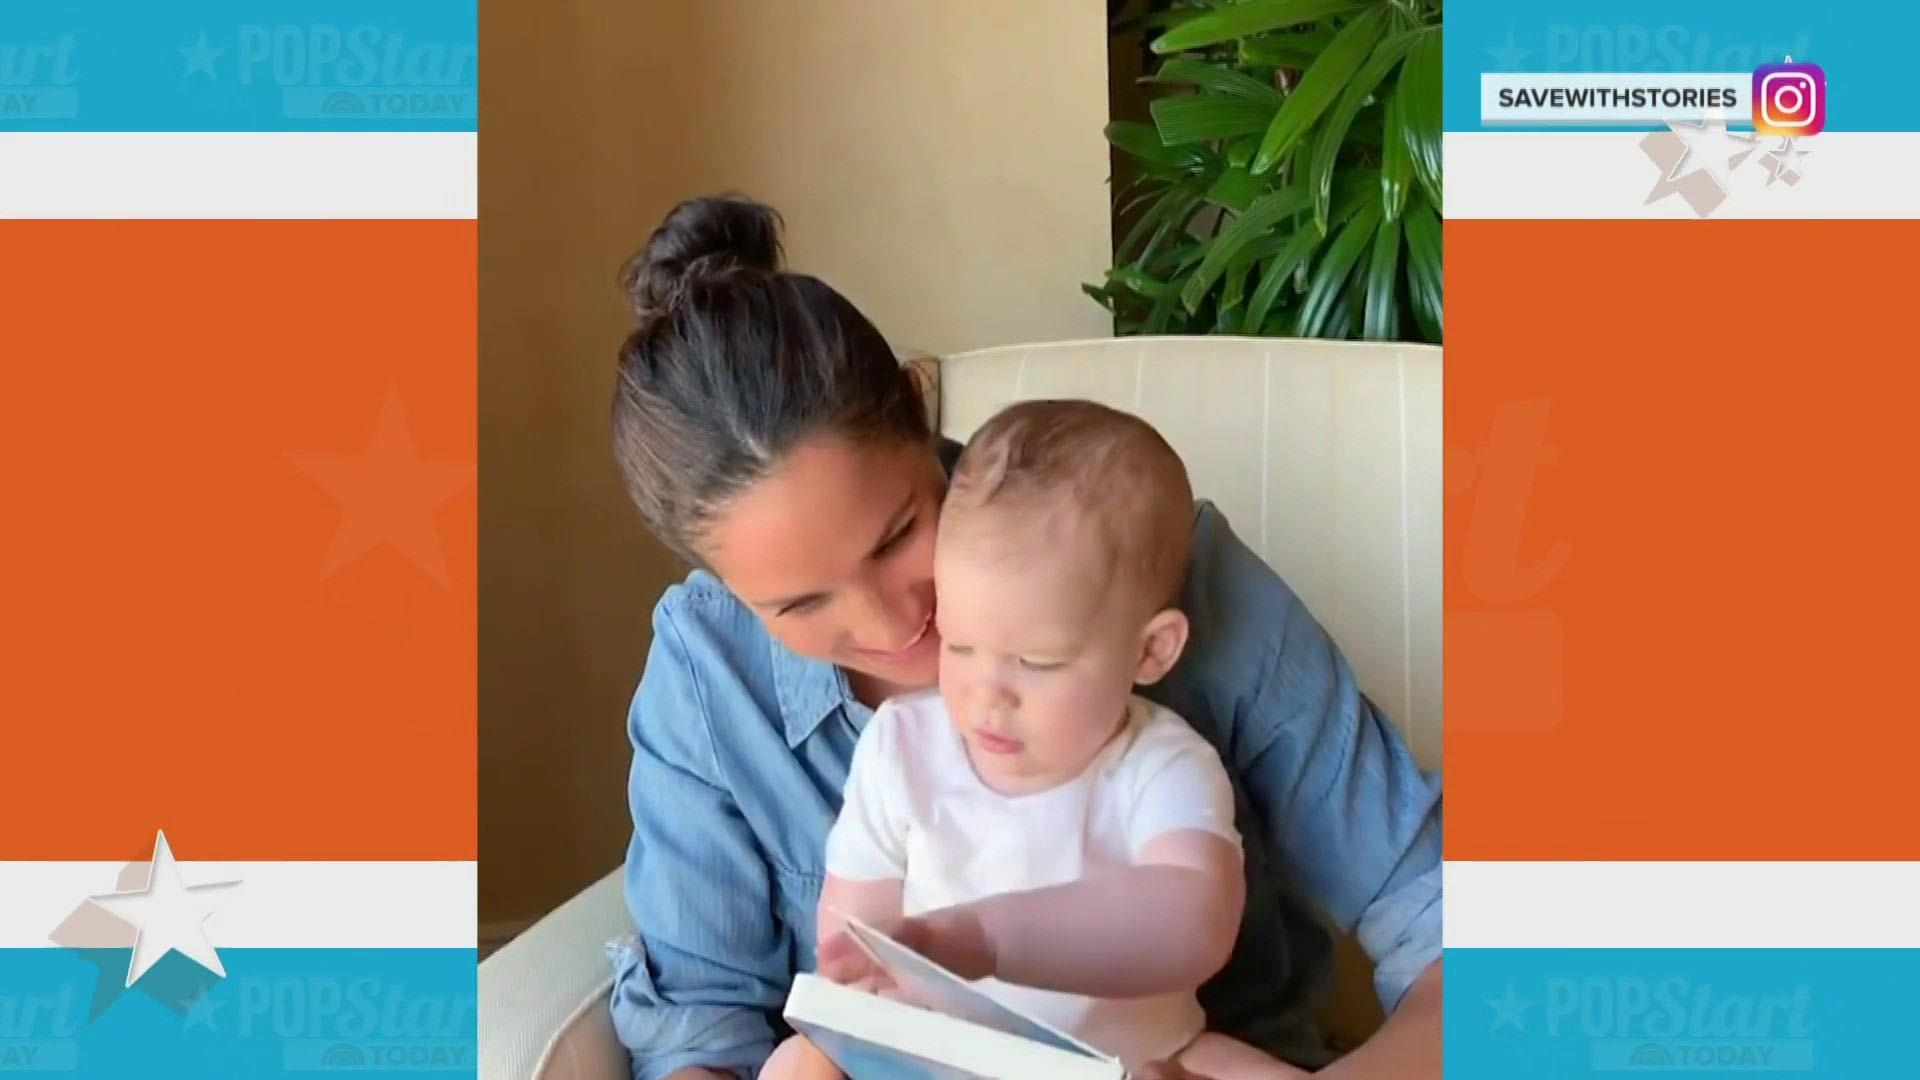 archie harrison birthday prince harry and meghan markle s son turns 1 meghan markle prince harry share new video of archie on his 1st birthday